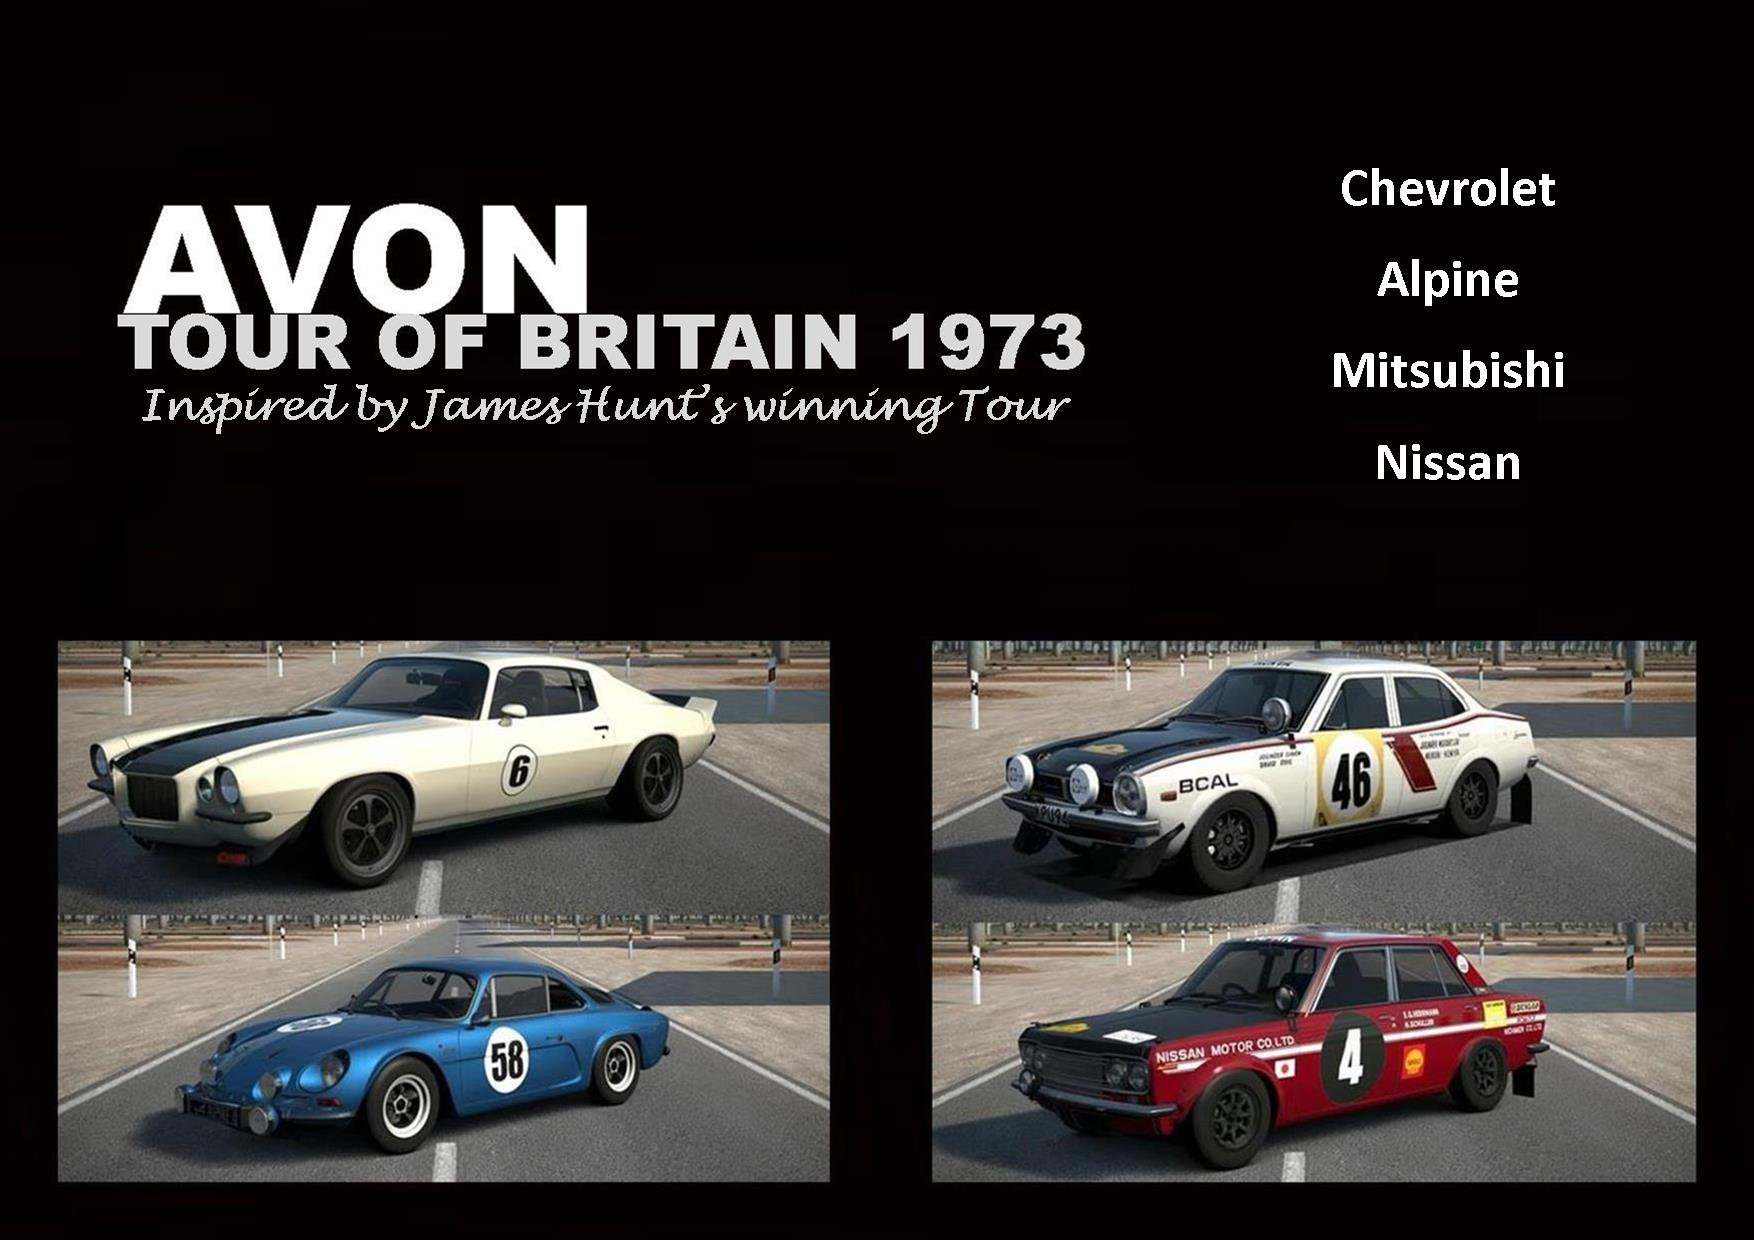 Avon Tour cars Final Poster.jpg